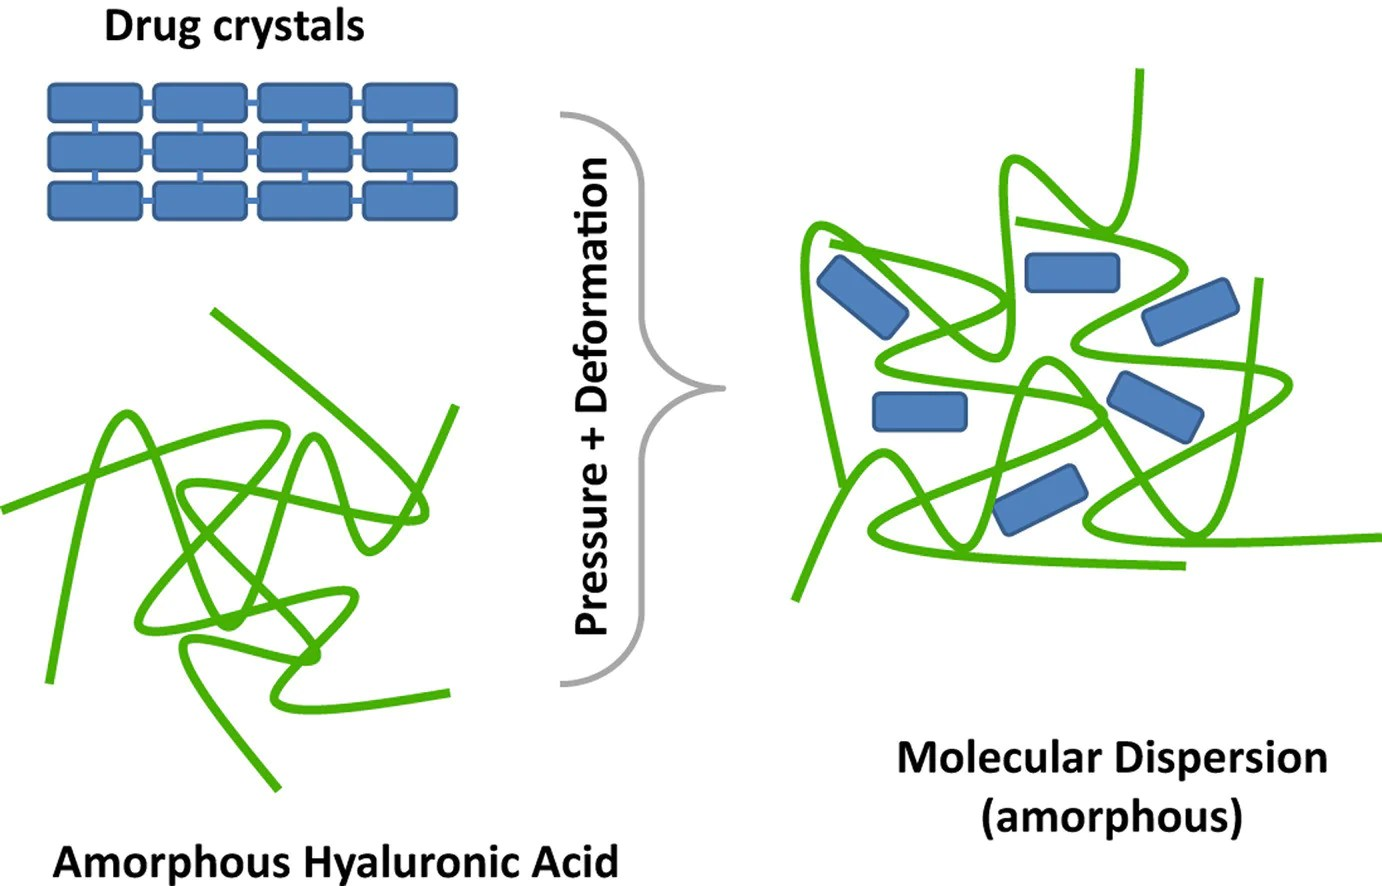 medium resolution of solid dispersions of drugs in hyaluronan matrix anti aging bioavailability hyaluronic acid